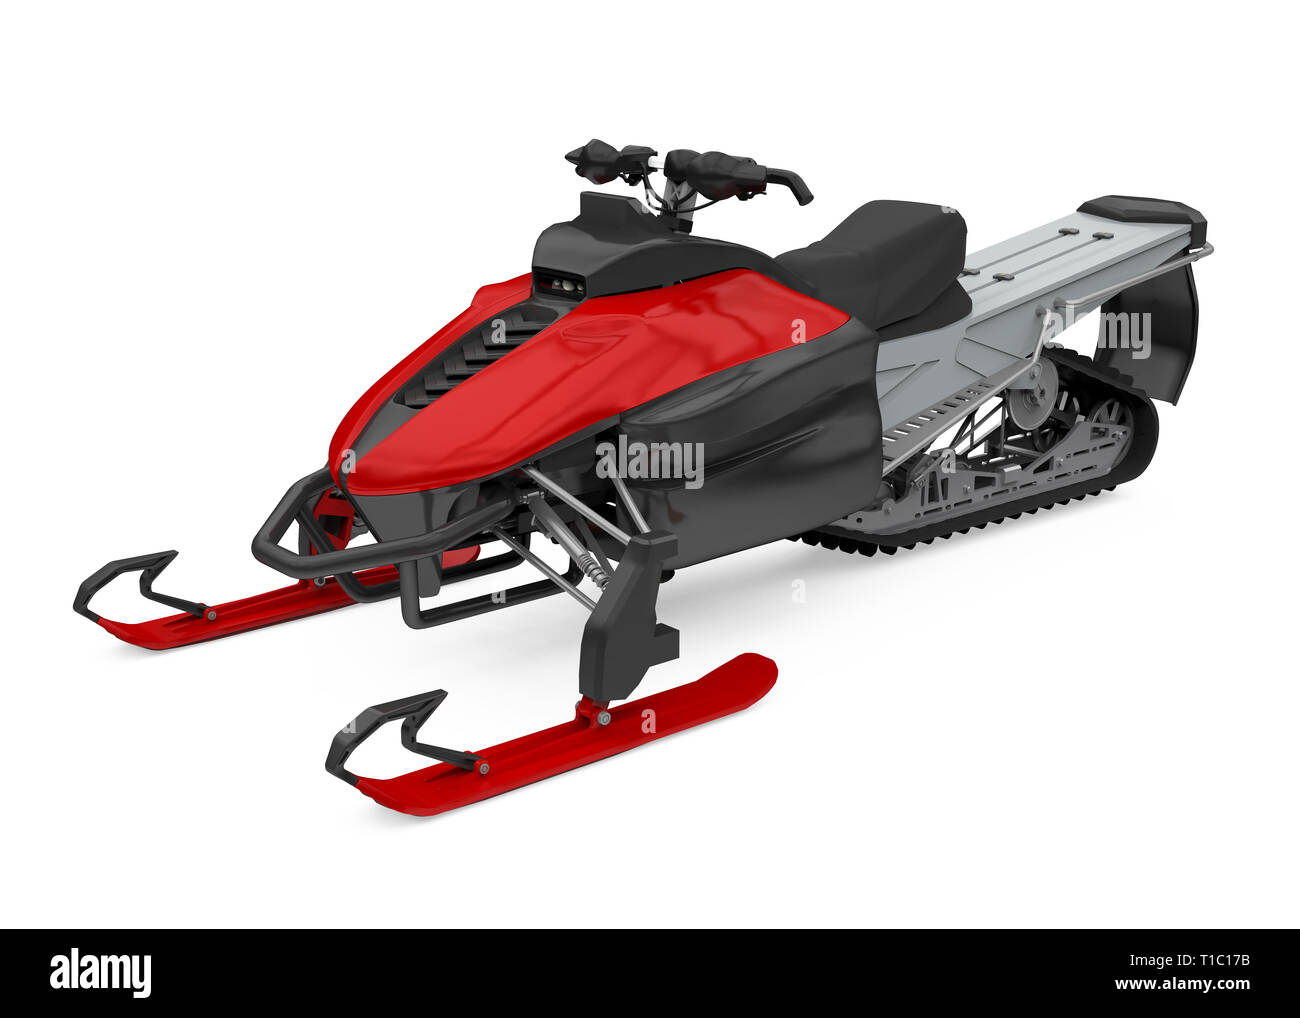 Red Snowmobile Isolated - Stock Image